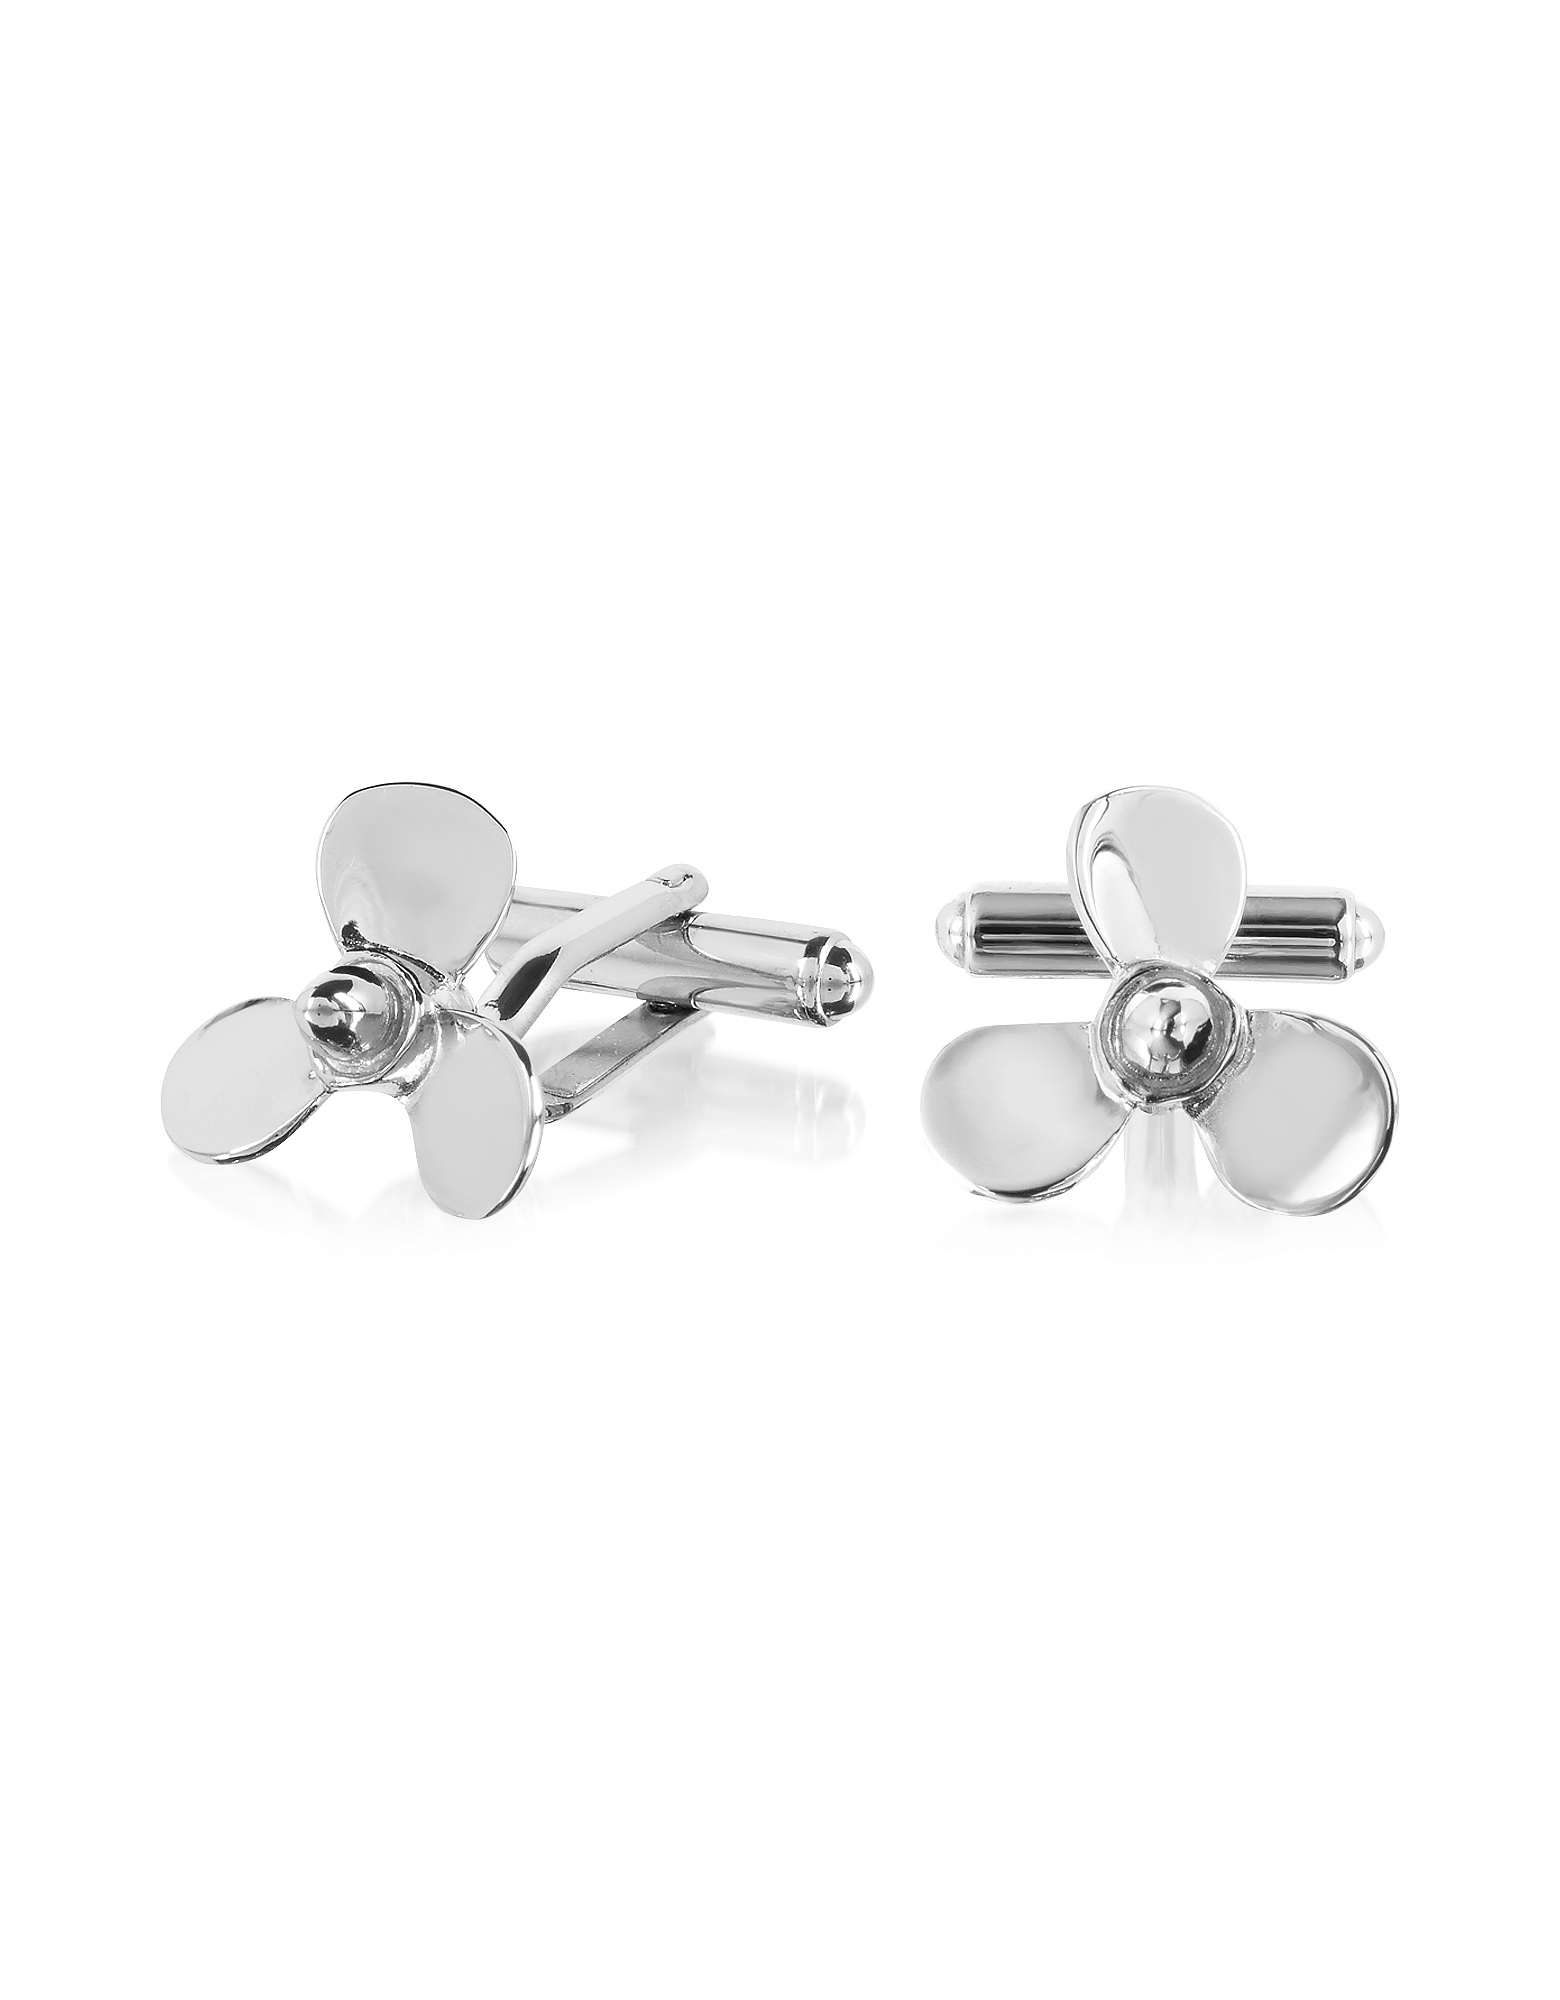 Old Style - Boat Propeller Cufflinks от Forzieri.com INT